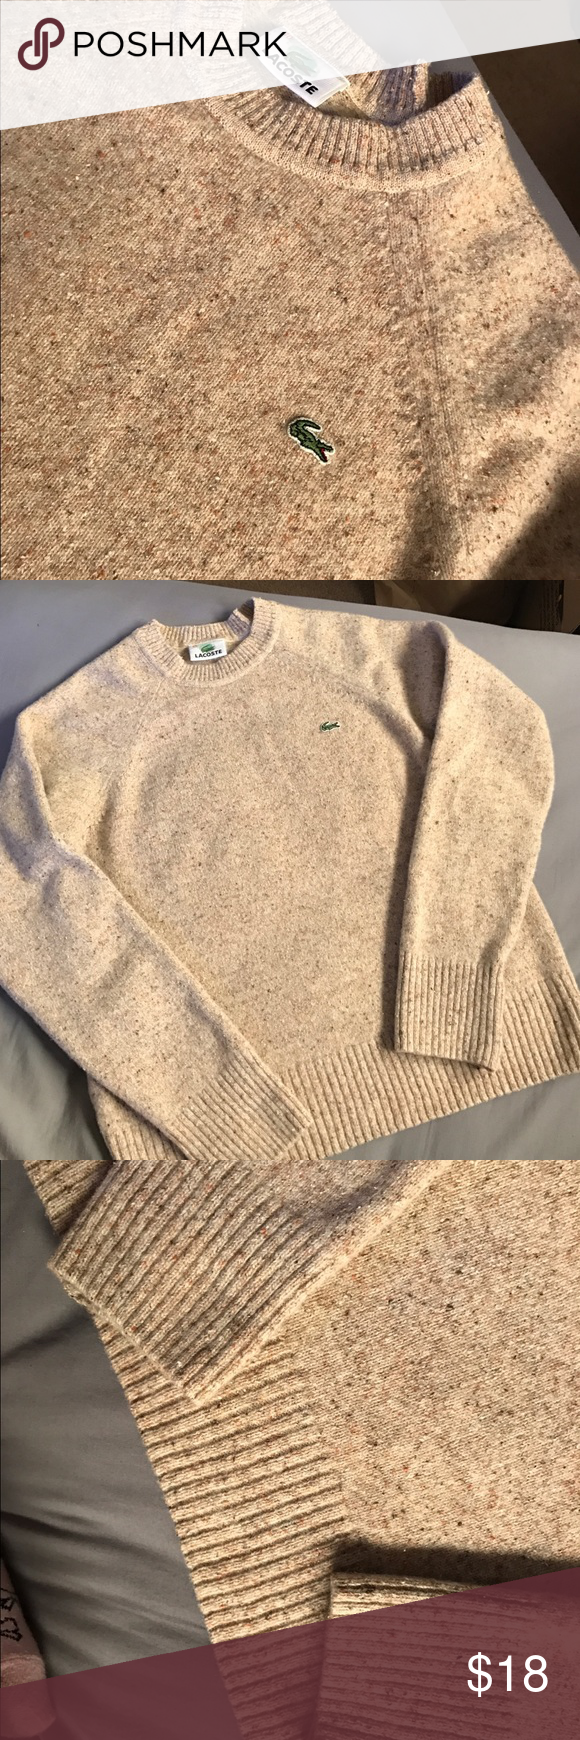 Small V Neck Jumper Beige Mens Very Good Condition